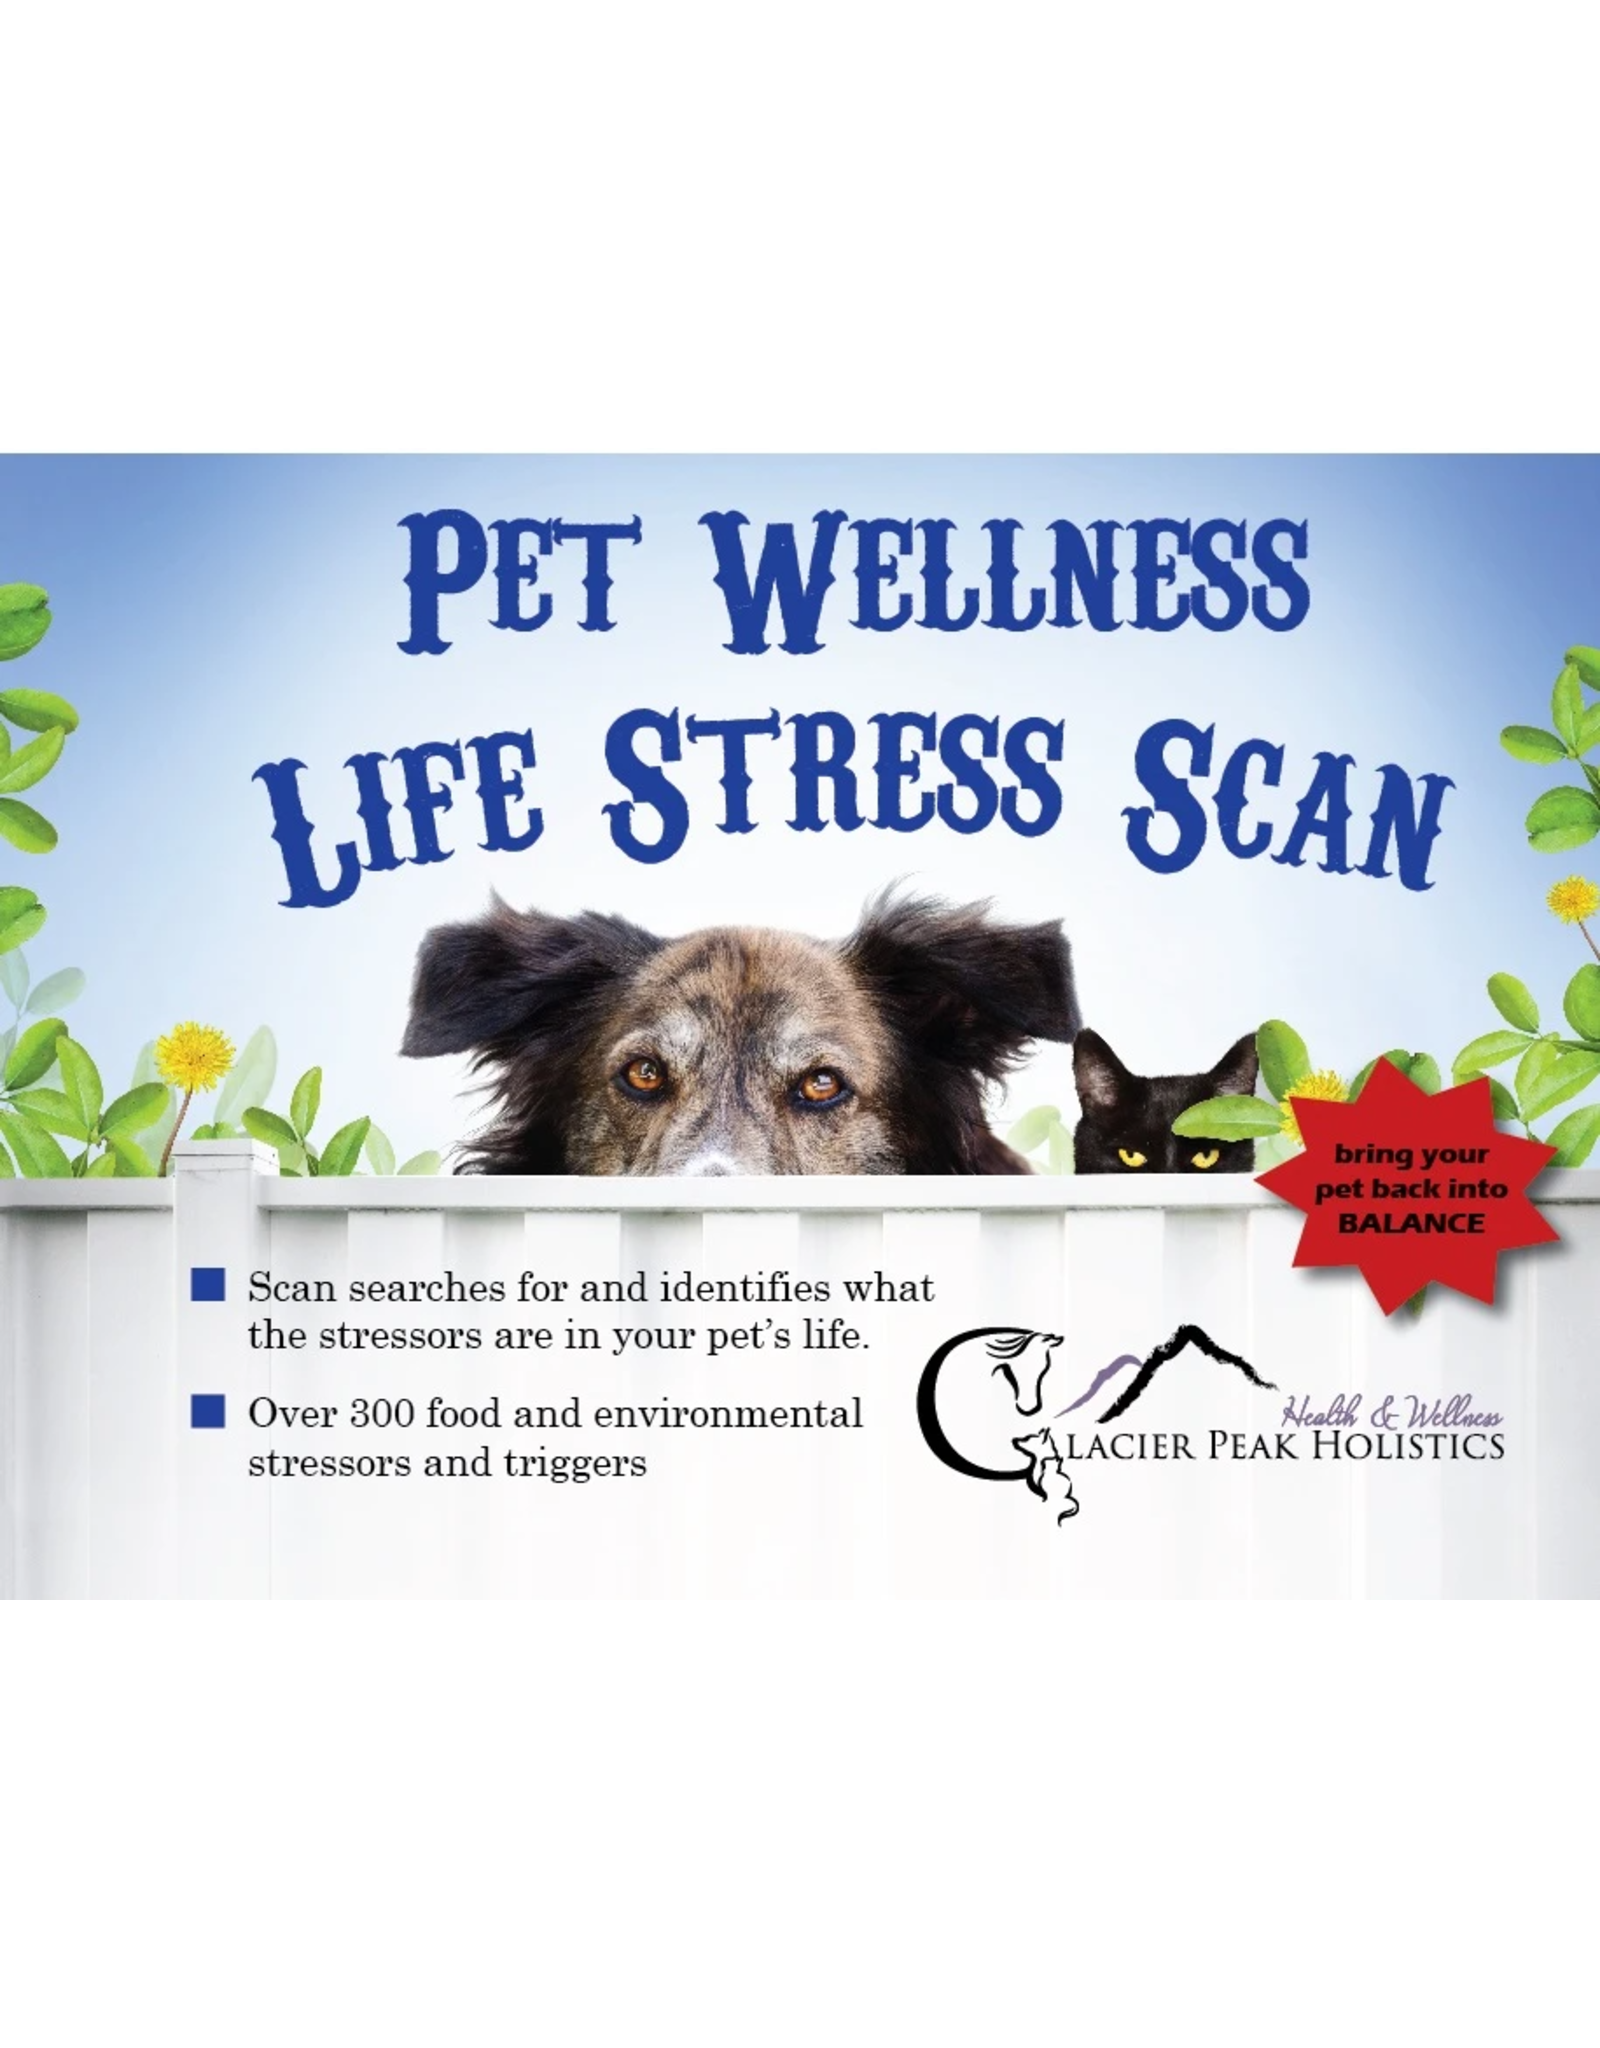 Glacier Peaks Holistics GLACIER PEAK HOLISTICS PET WELLNESS LIFE STRESS SCAN